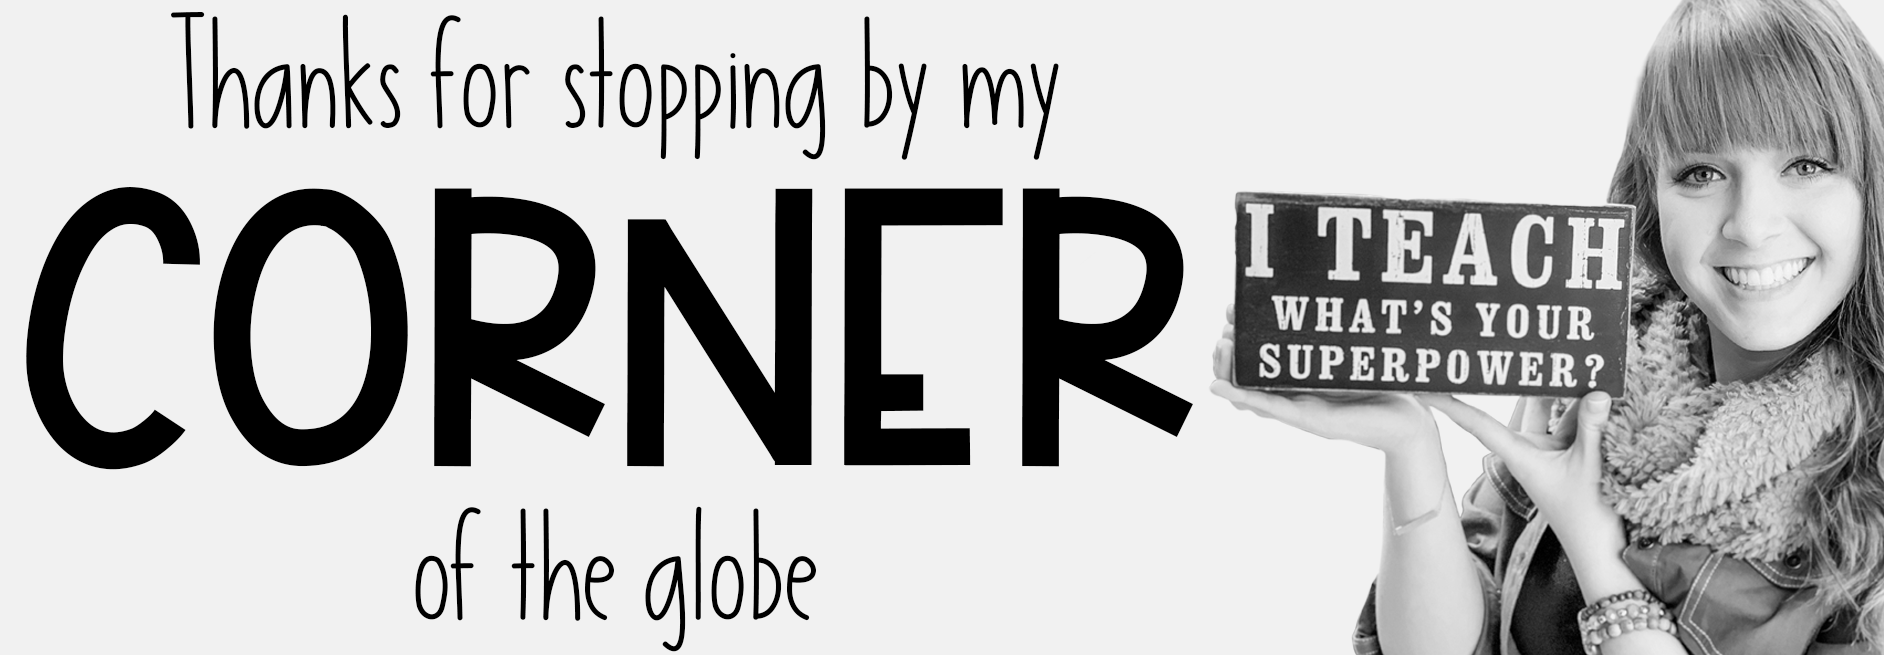 Designing logos for teachers. An example of a teacher's photo in a banner.